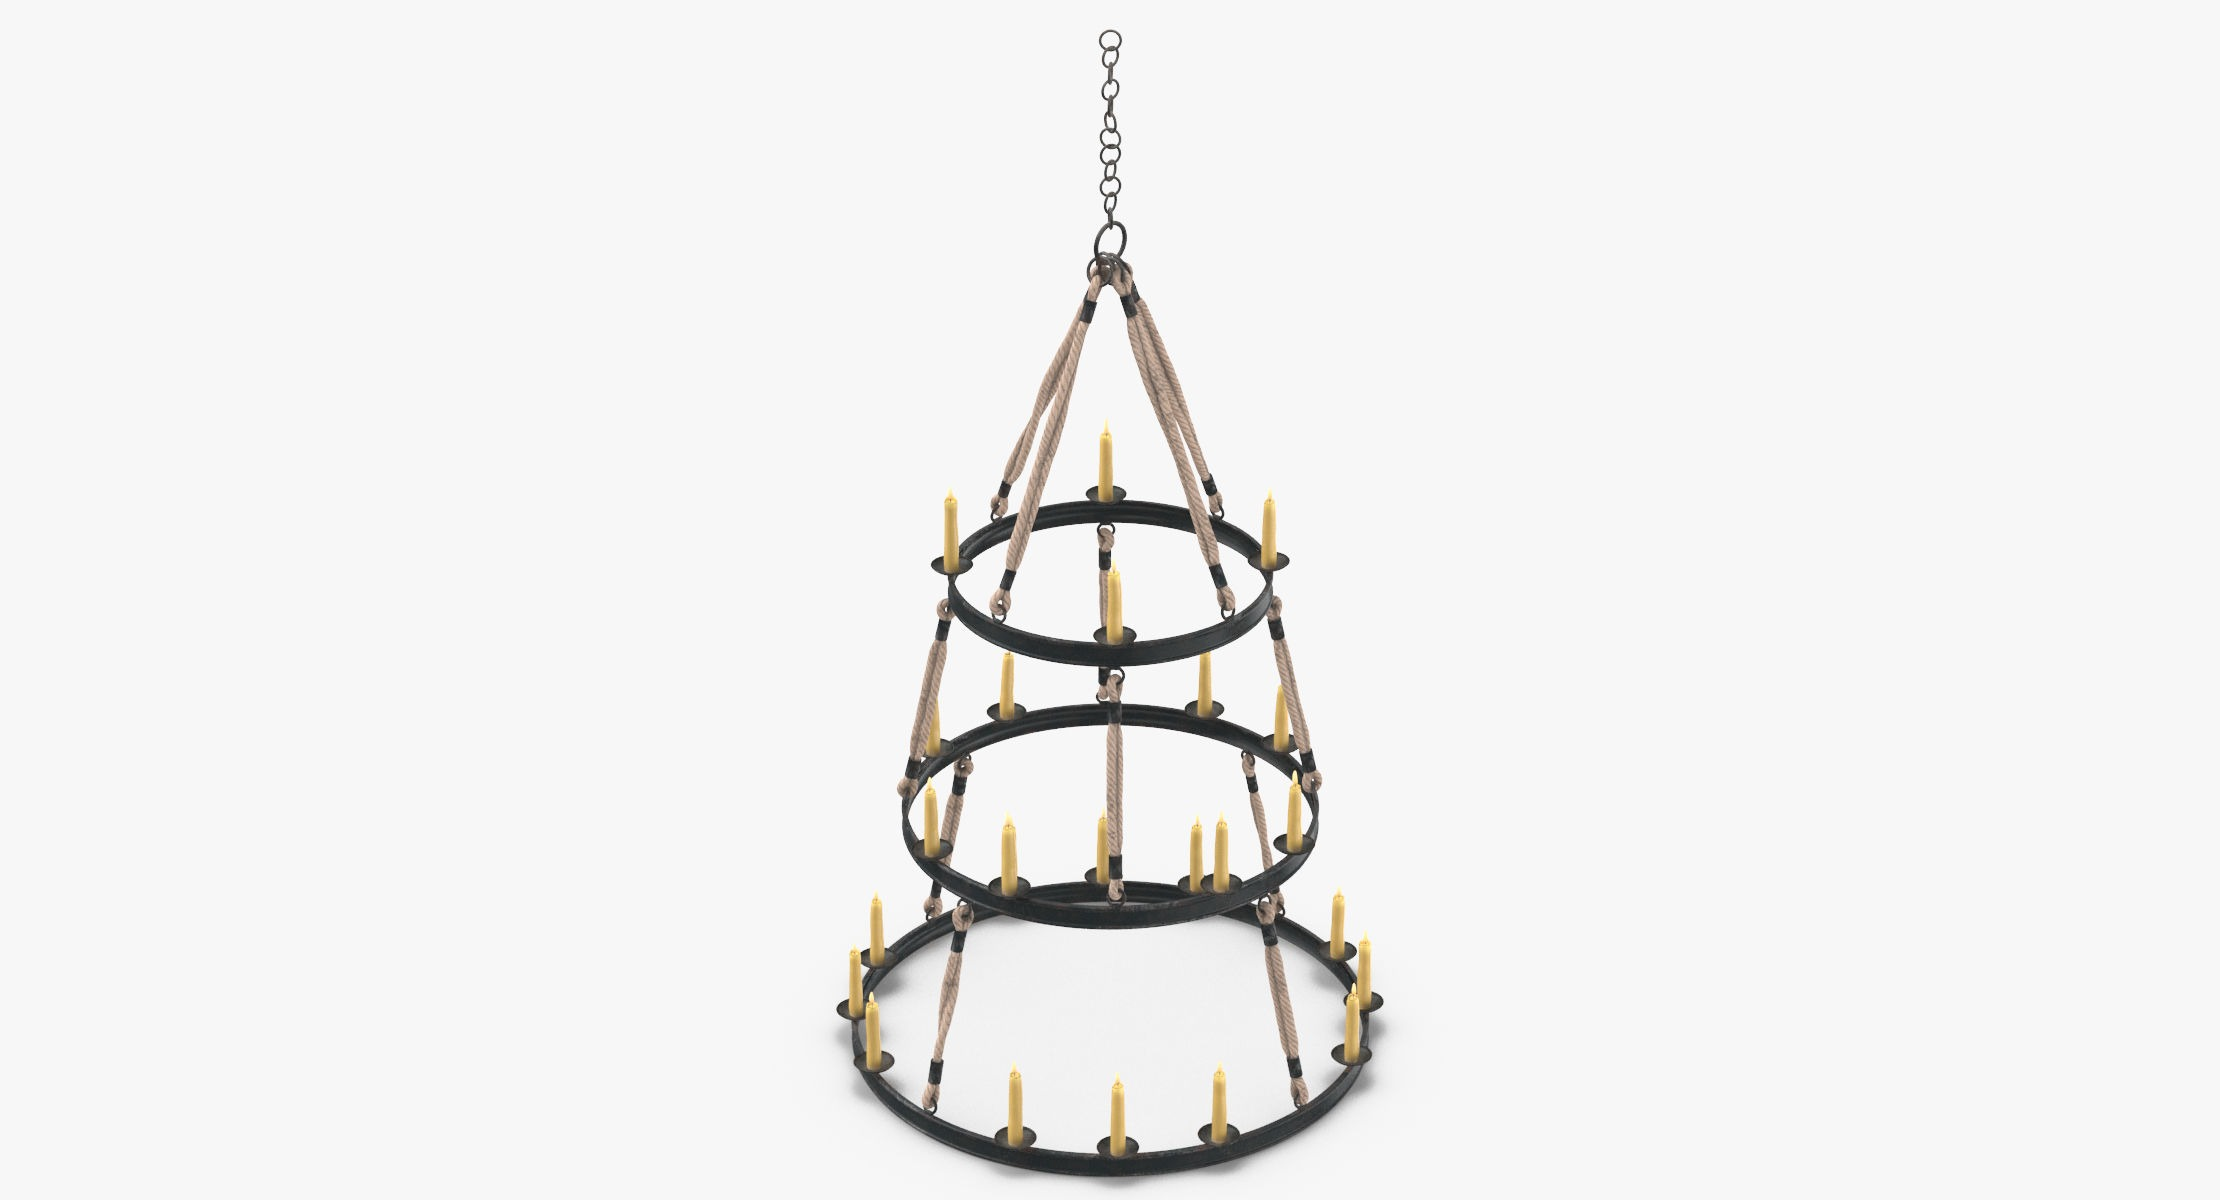 Candle Chandelier 02 - reel 1